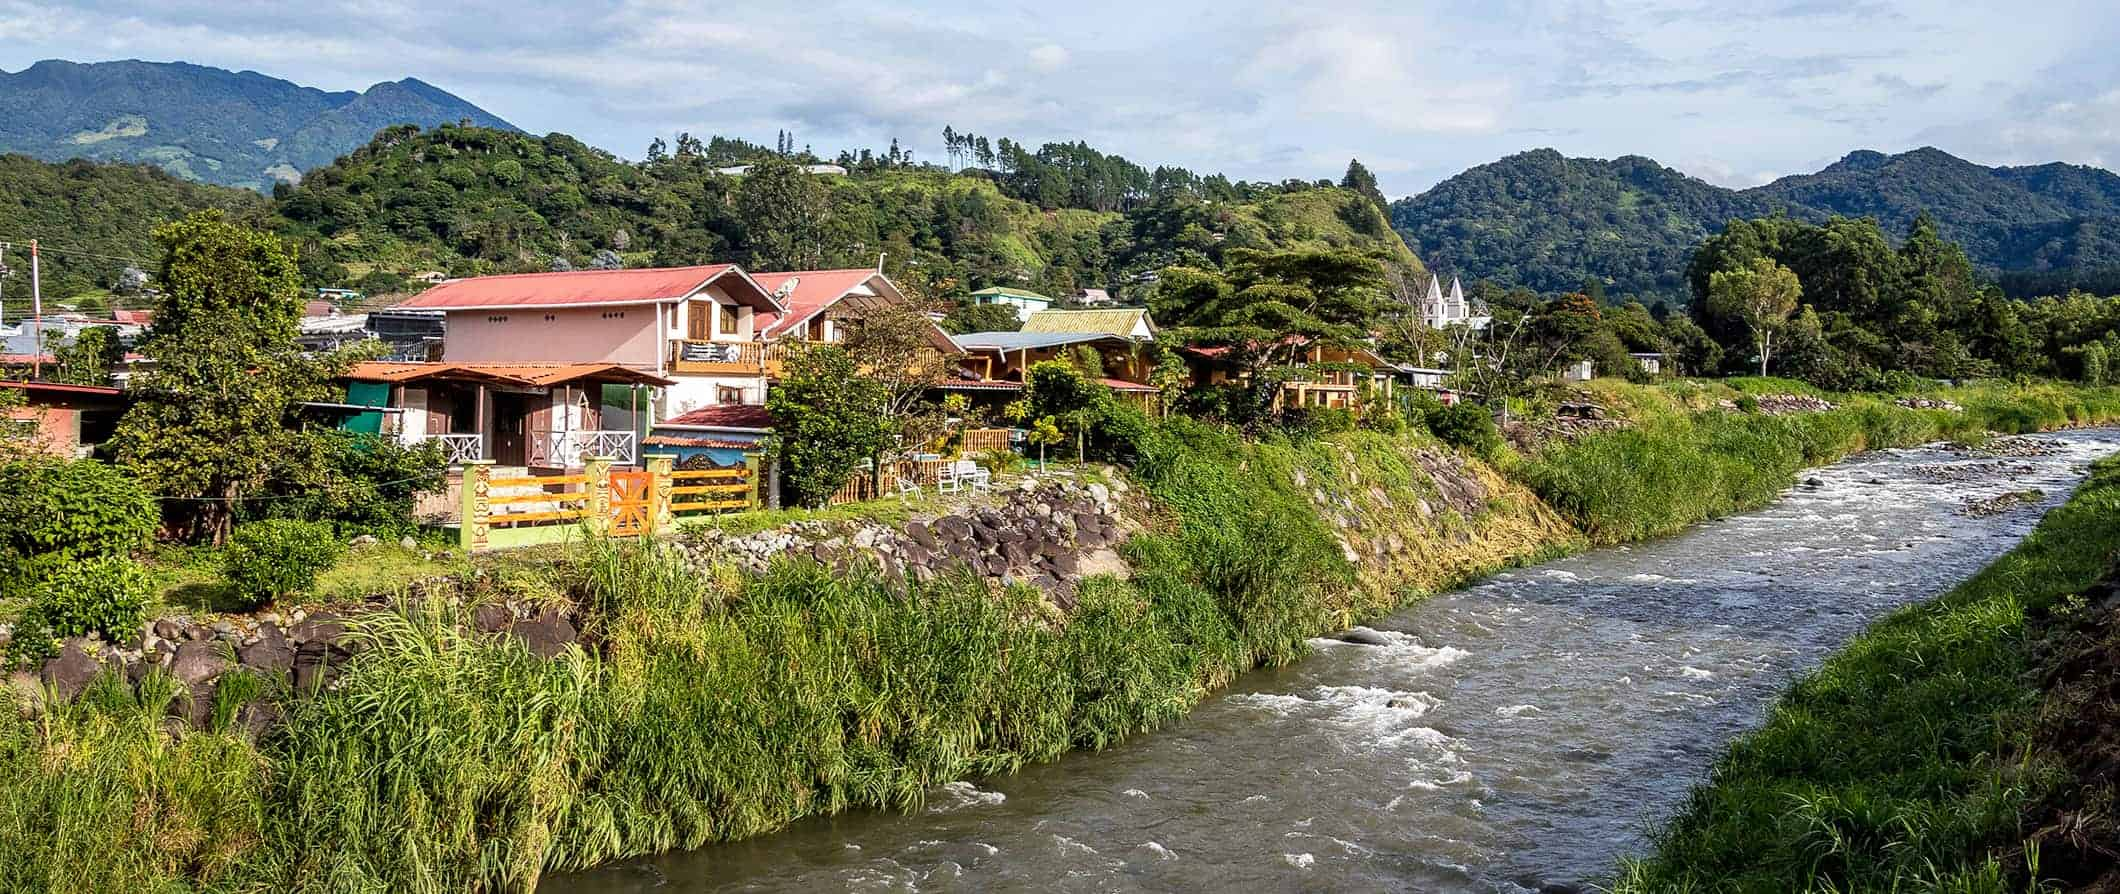 along the river in Boquete